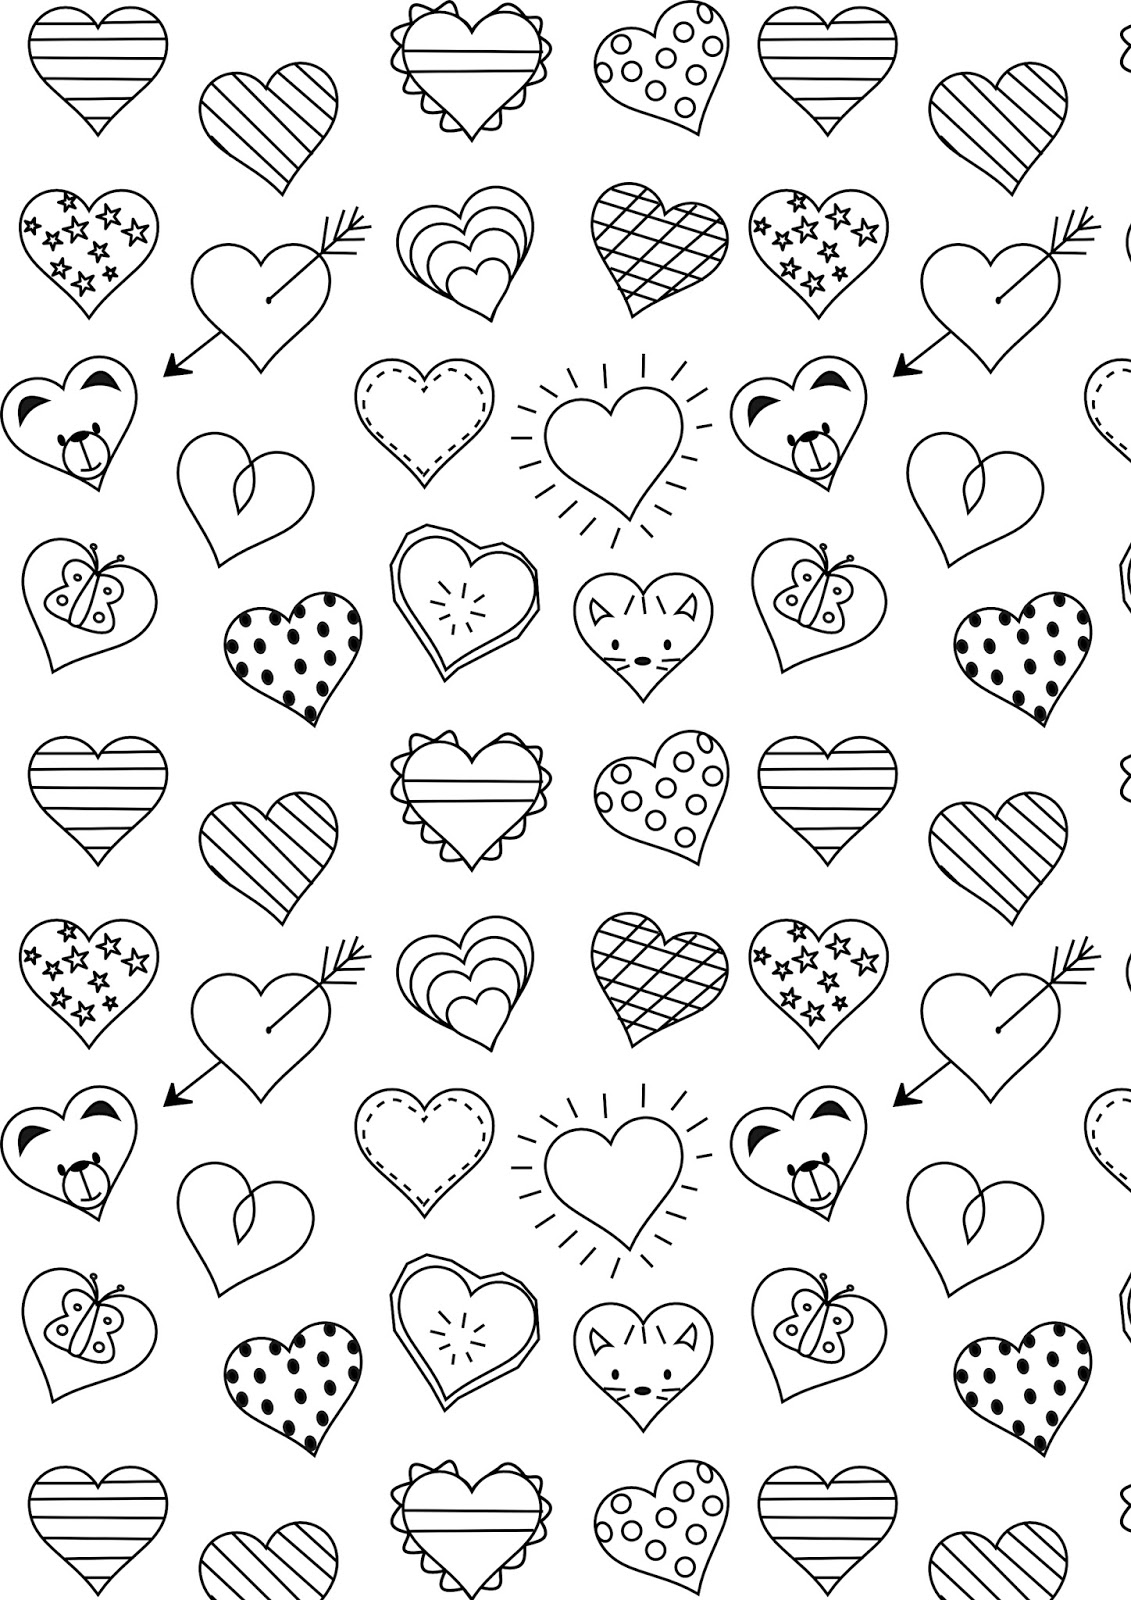 hearts printable coloring pages free printable heart coloring pages for kids coloring printable pages hearts